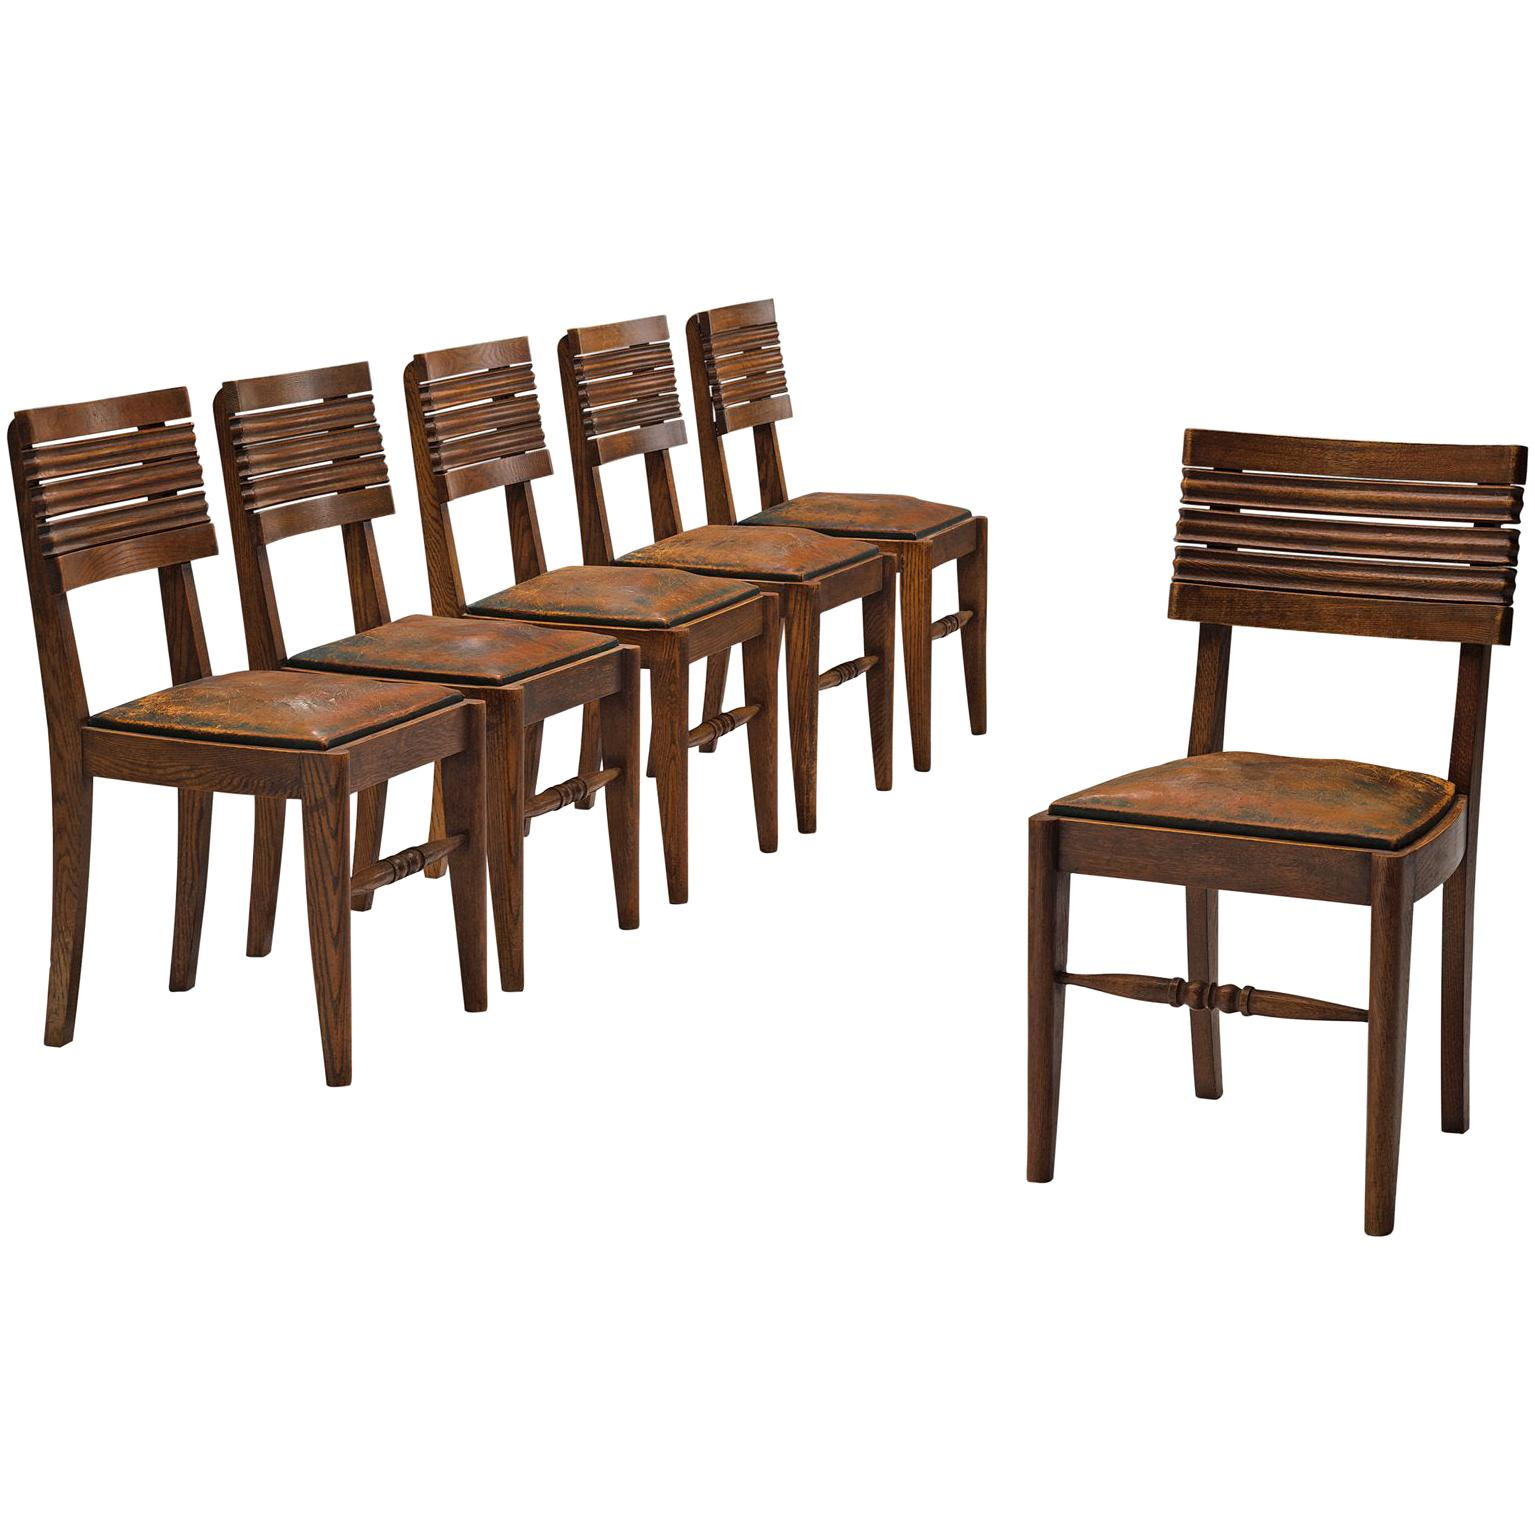 Gaston Poisson Set of Six Leather and Oak Dining Chairs